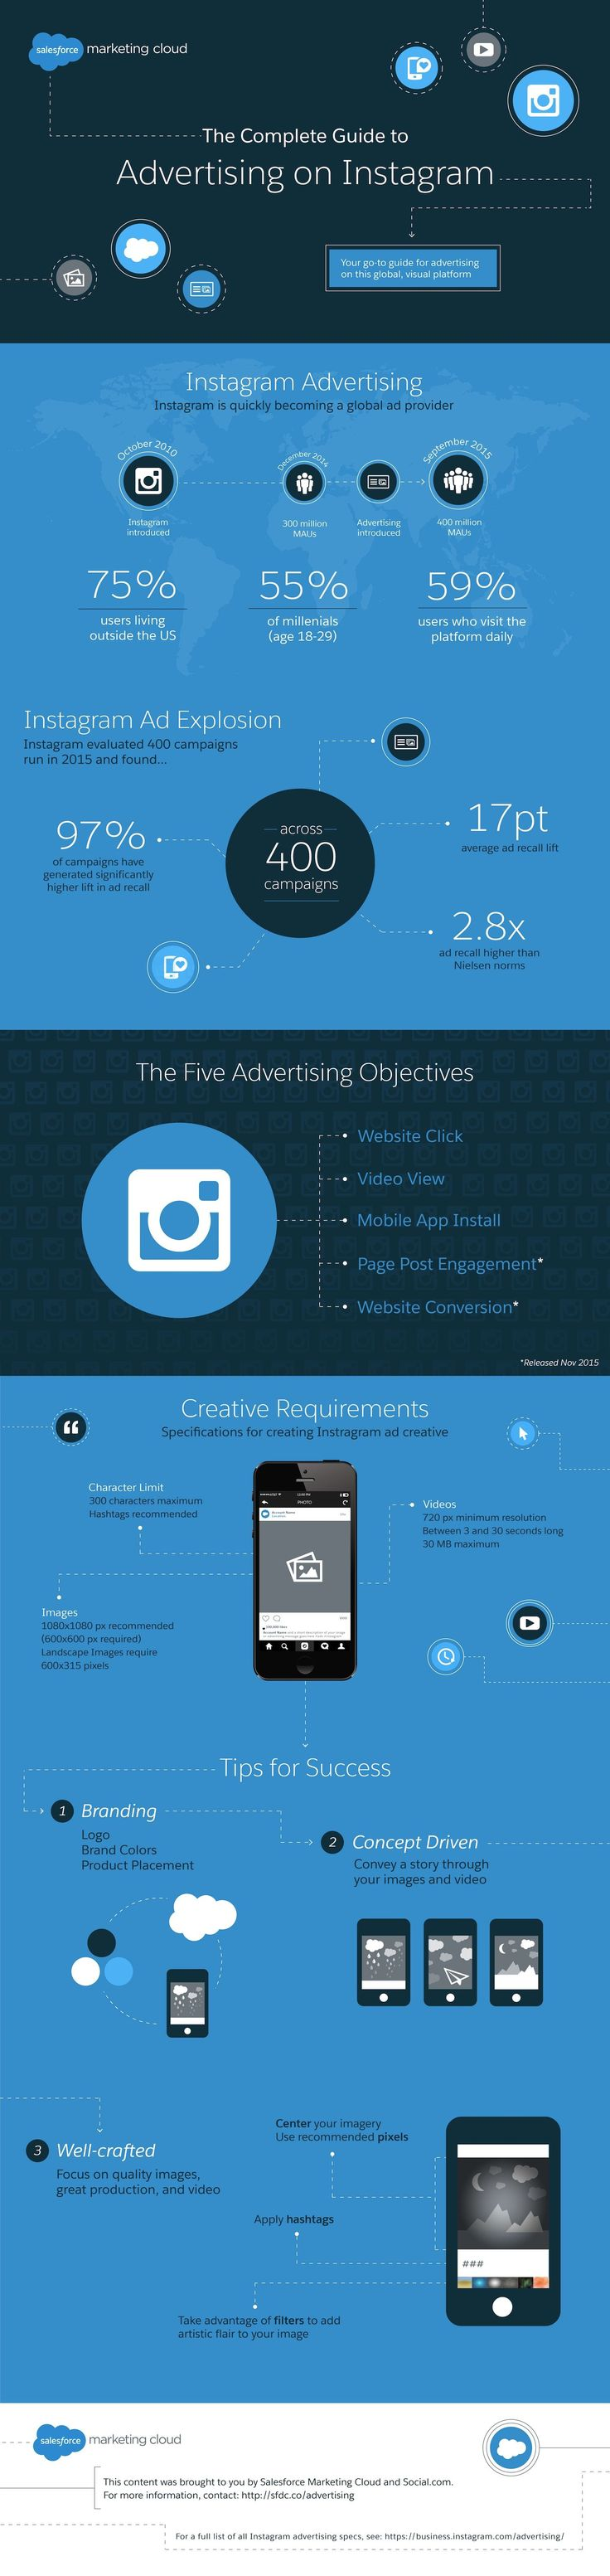 Today's infographic will go over the important options when deciding to advertise with Instagram. #payattention